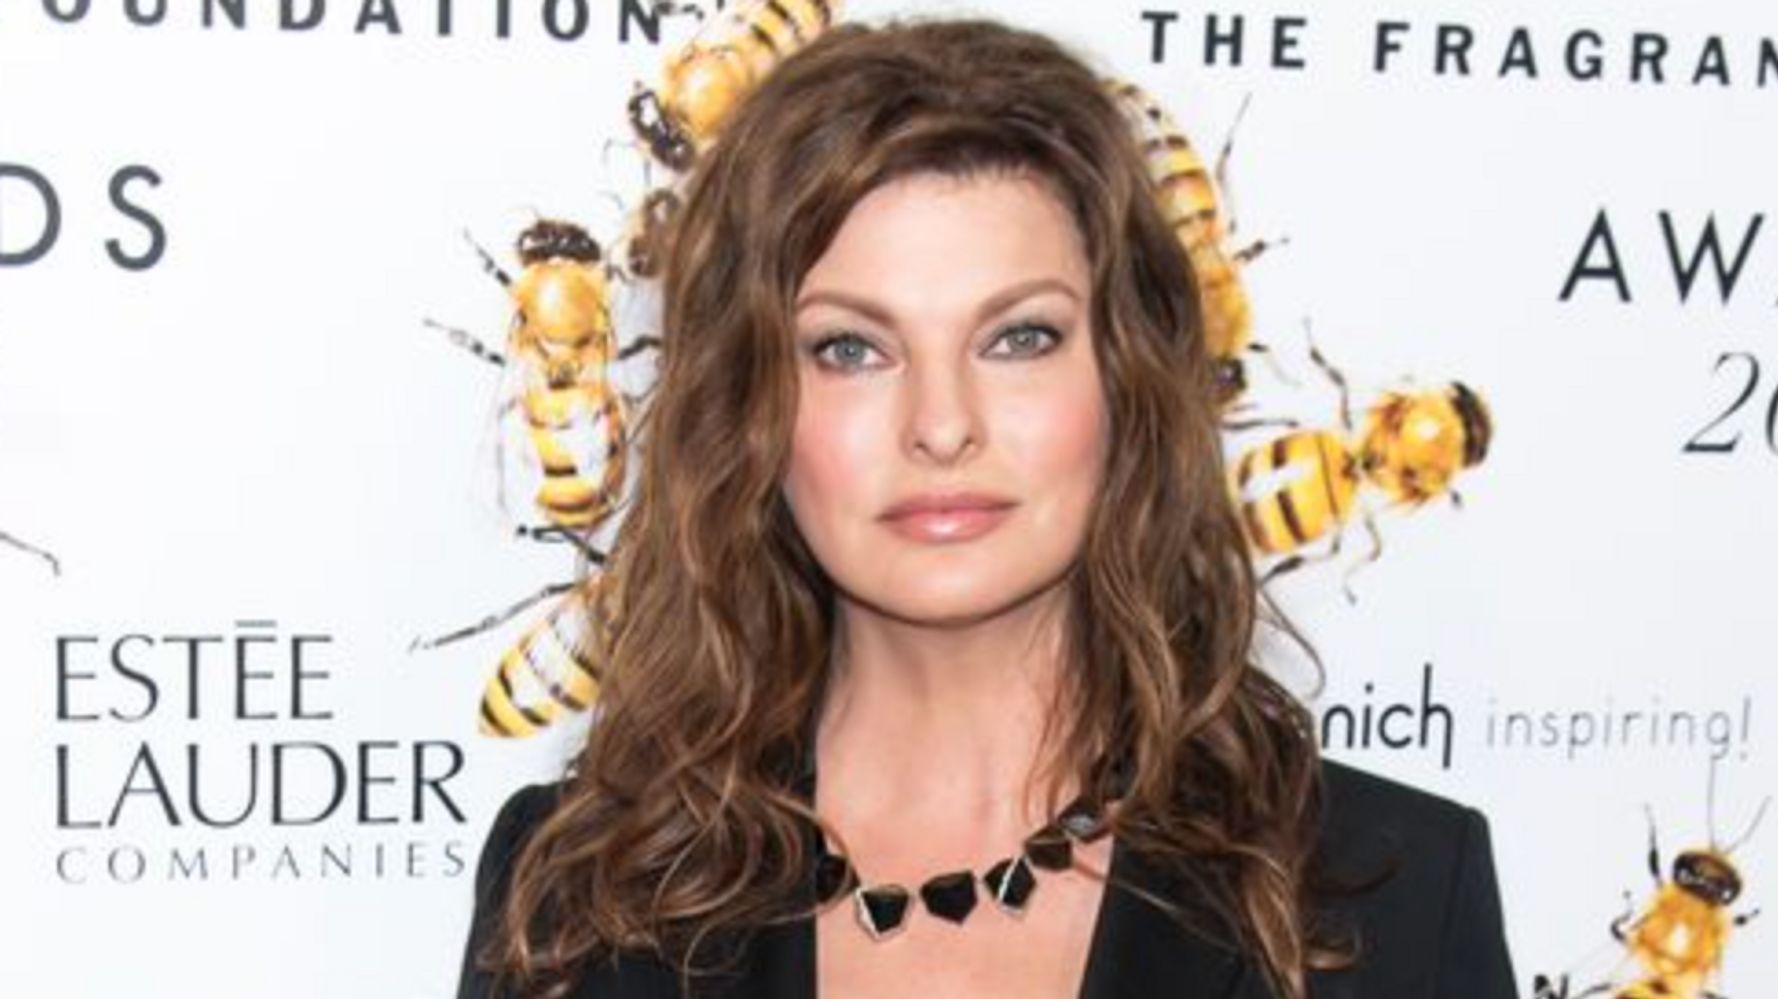 Linda Evangelista Reveals Model Gigs She Was 'Forced To Decline' After Procedure